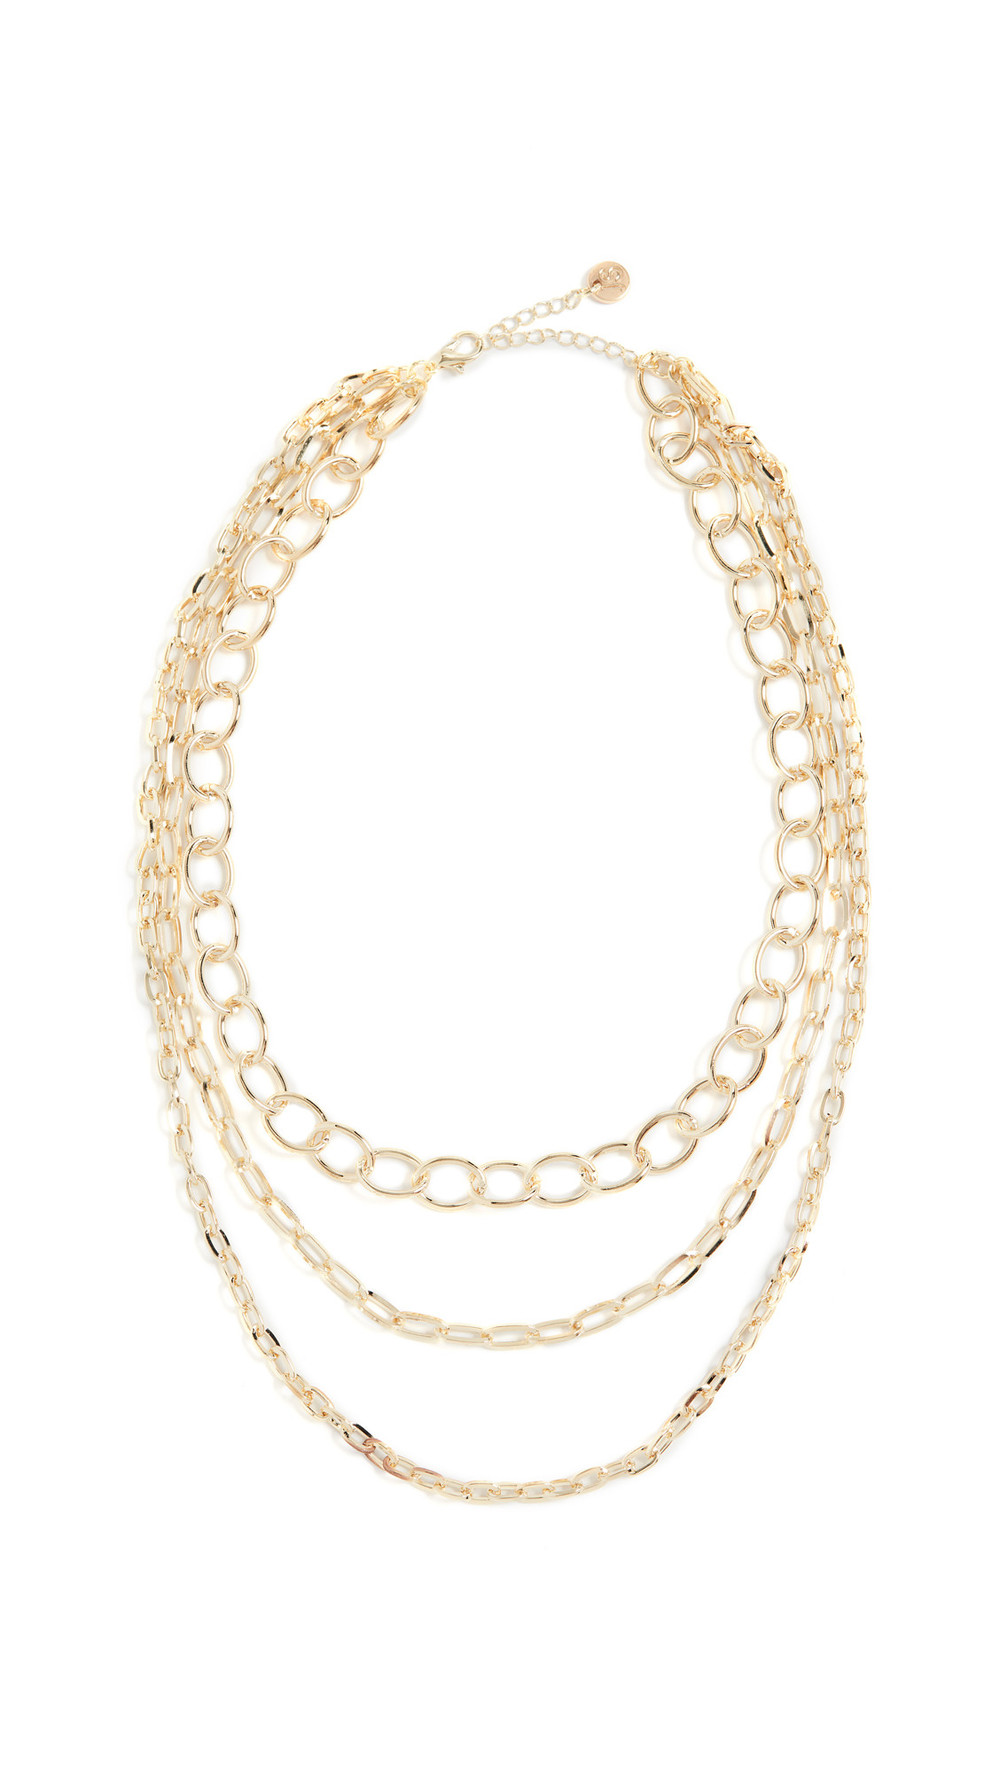 Jules Smith Layered Chain Necklace in gold / yellow